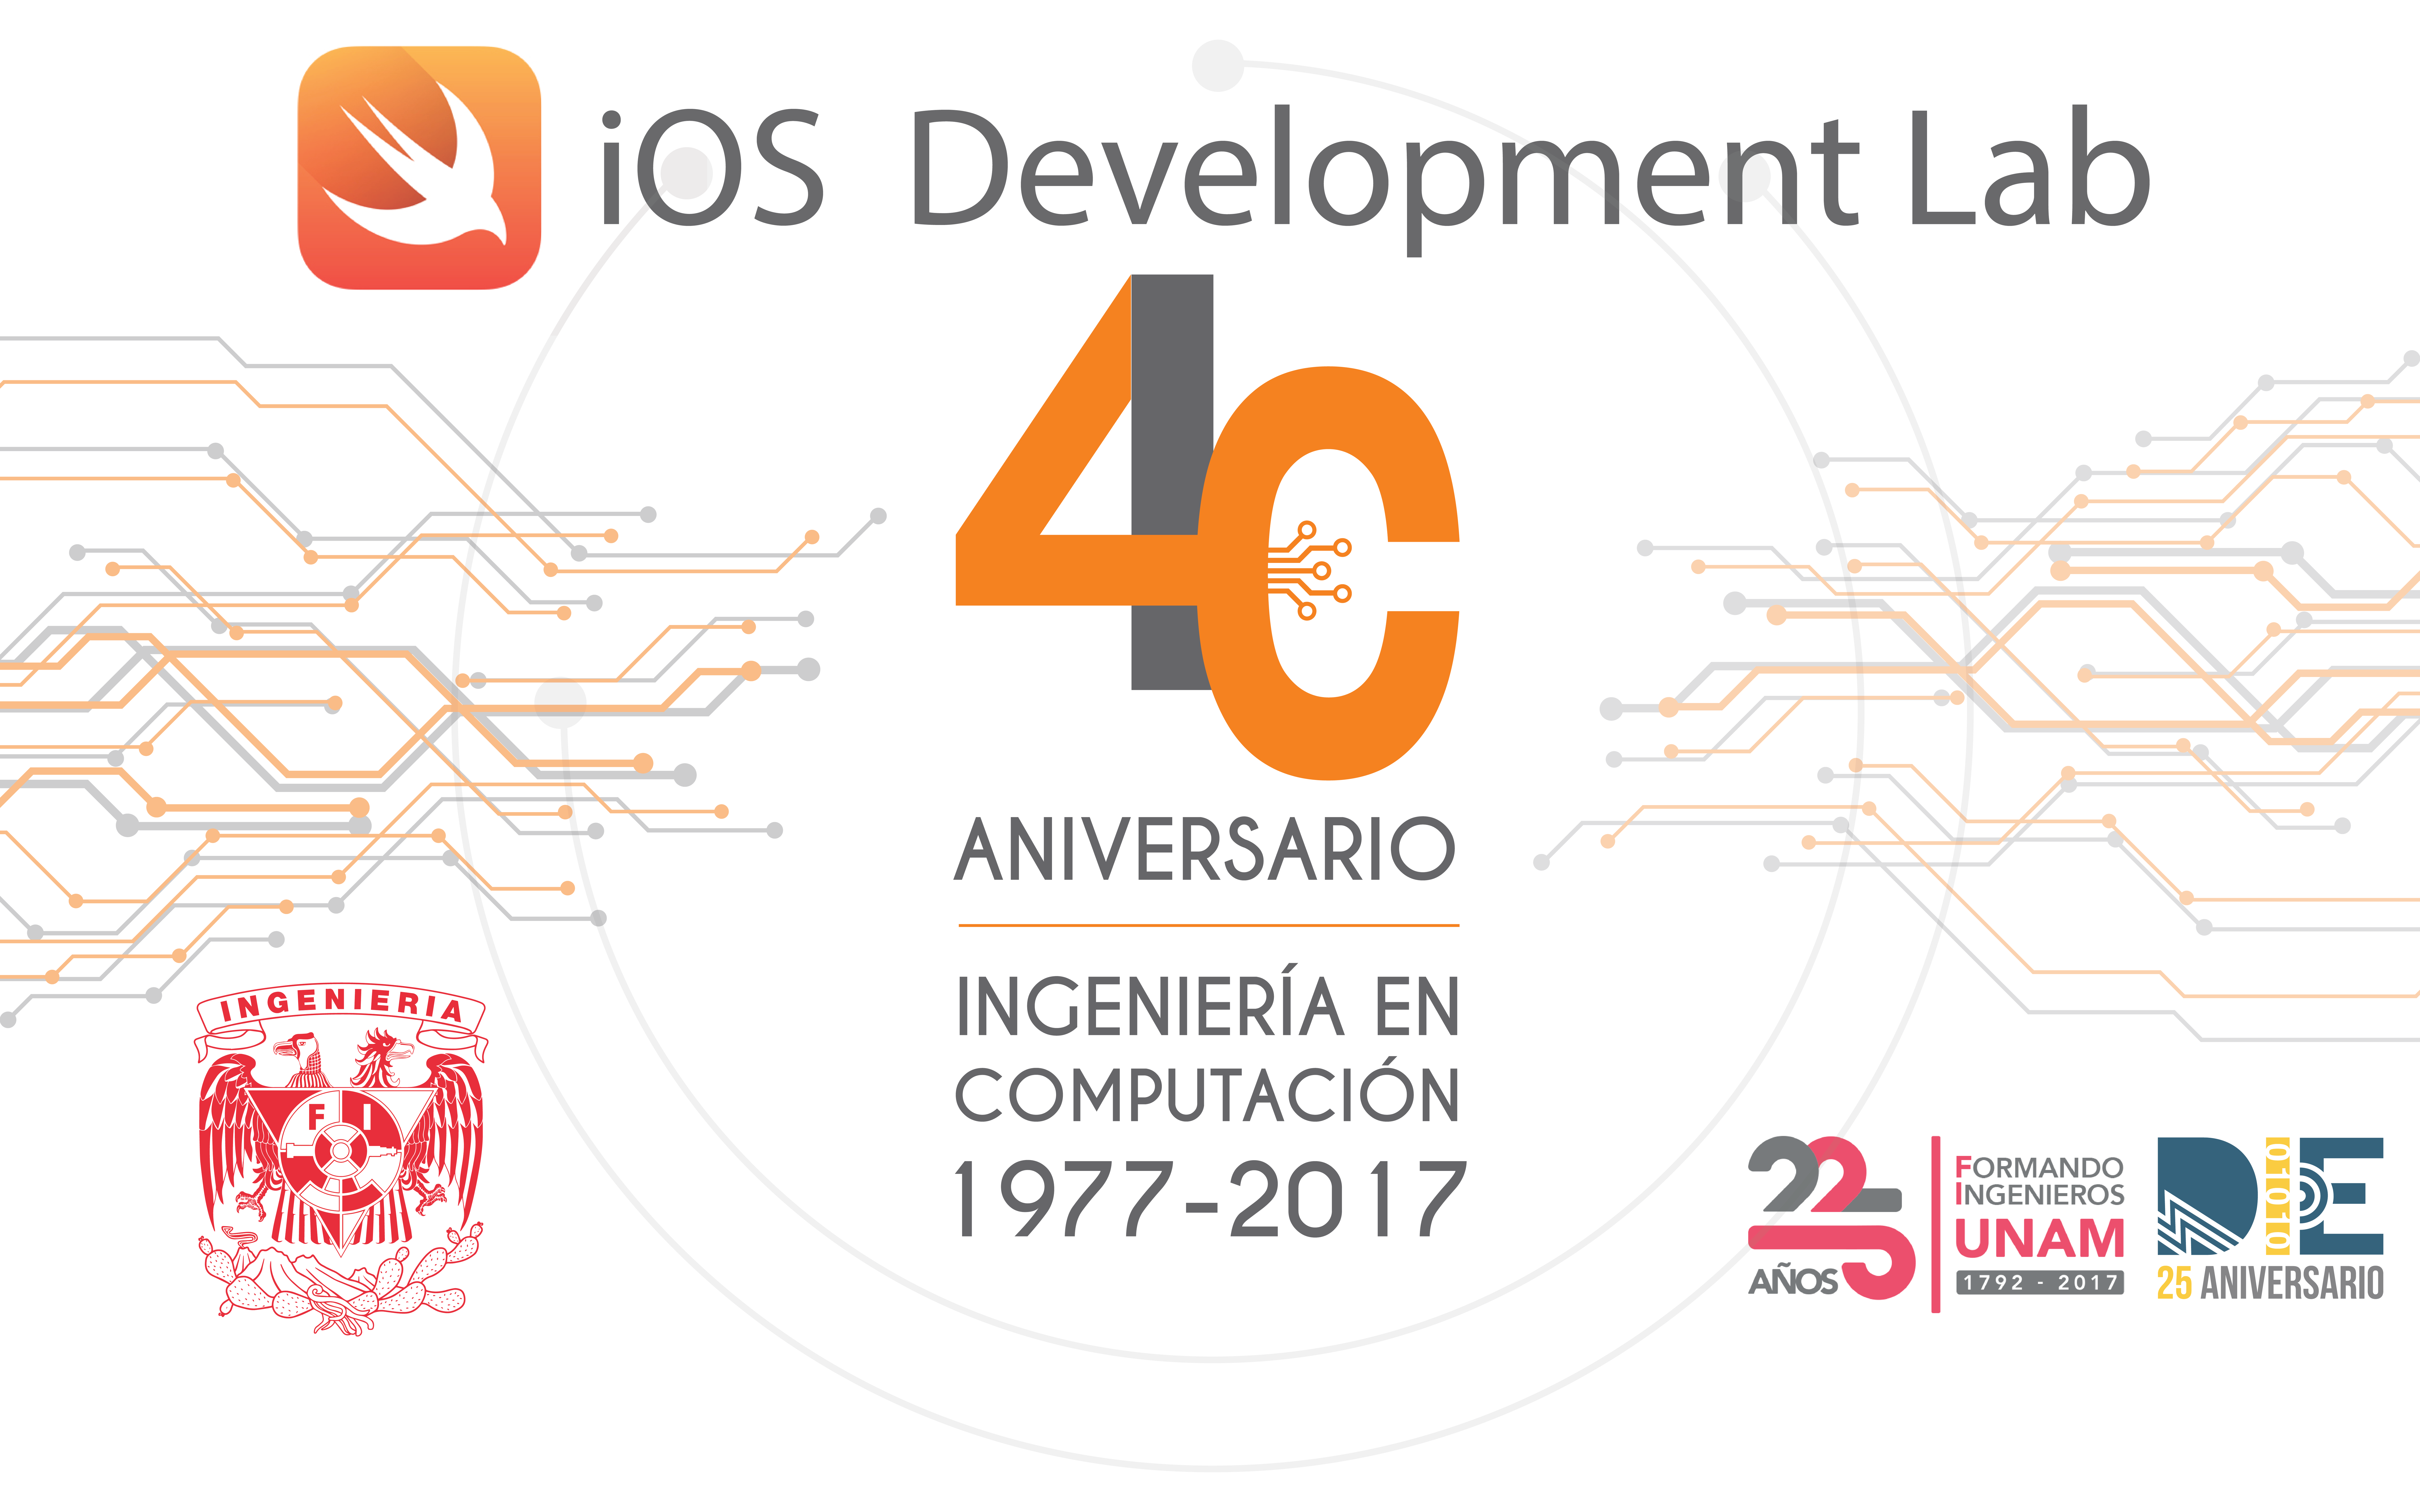 IOS development lab